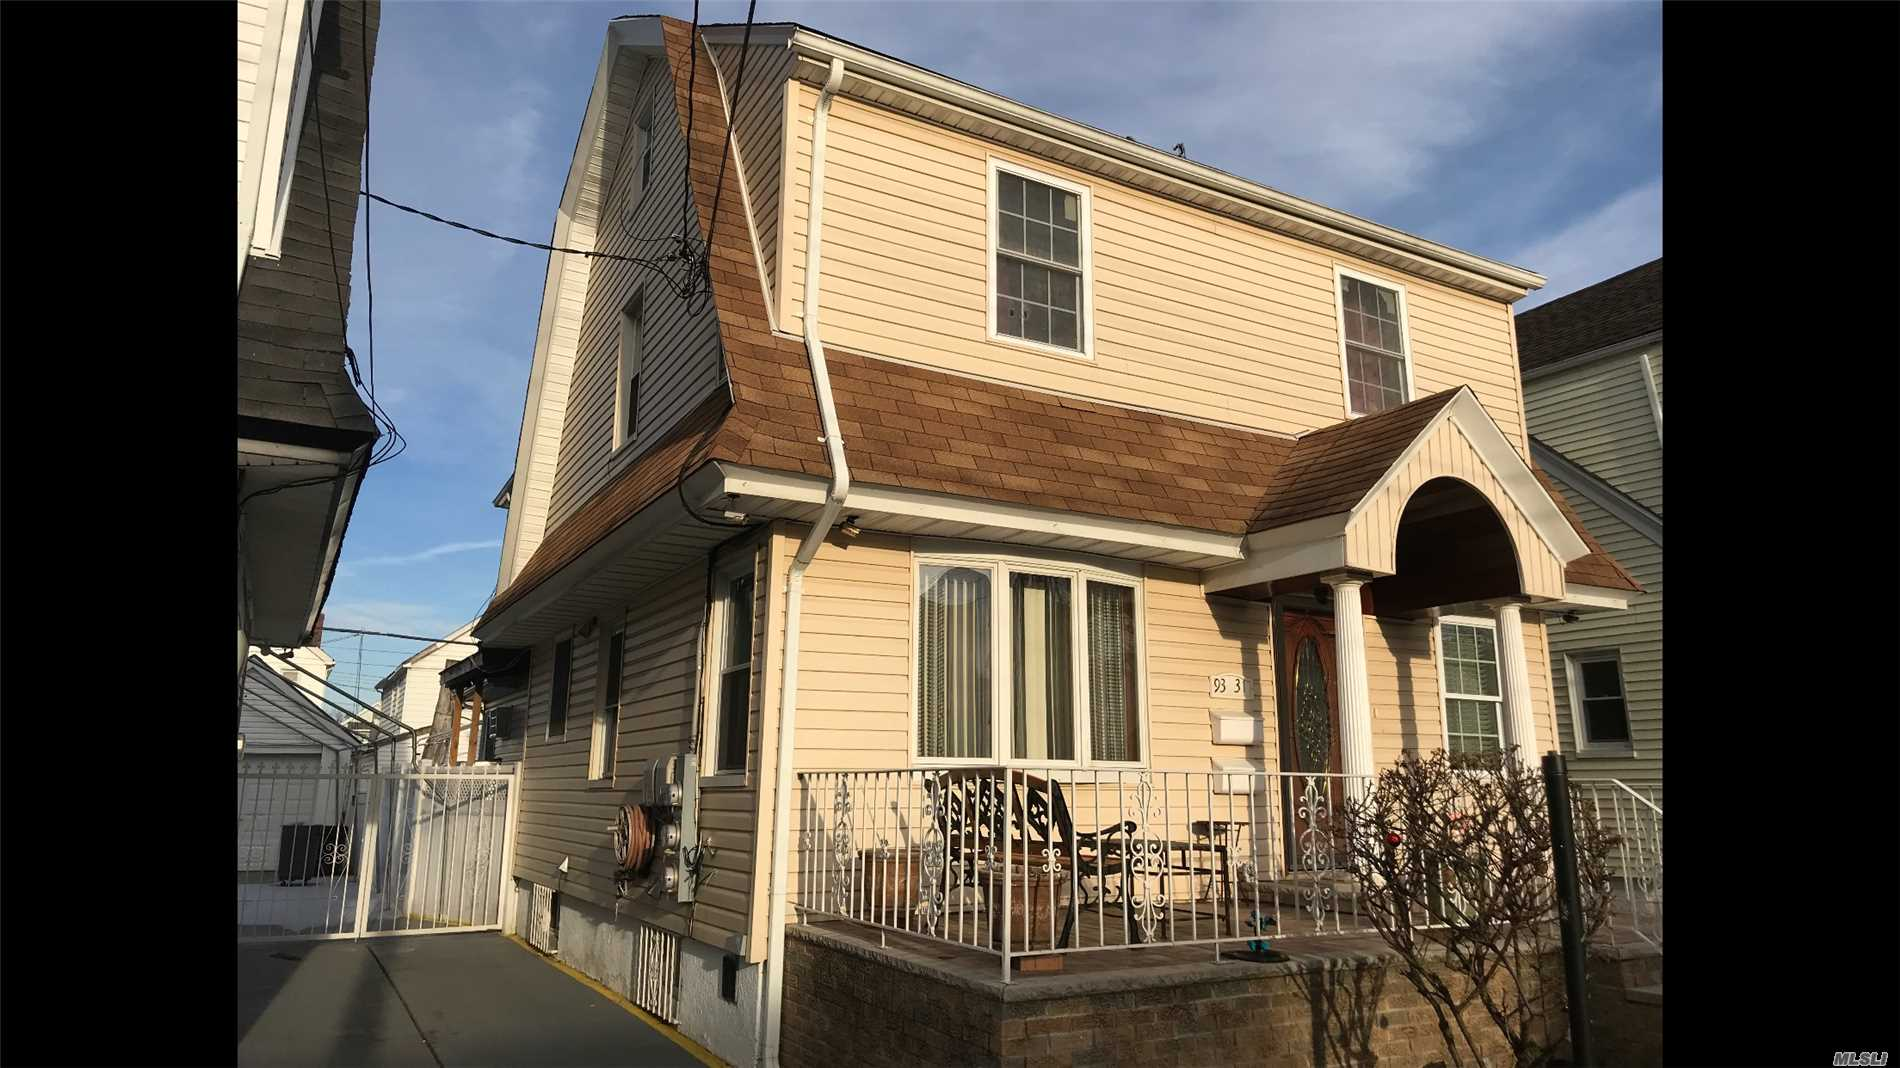 Property for sale at 93-31 205th Street, Hollis NY 11423, Hollis,  New York 11423